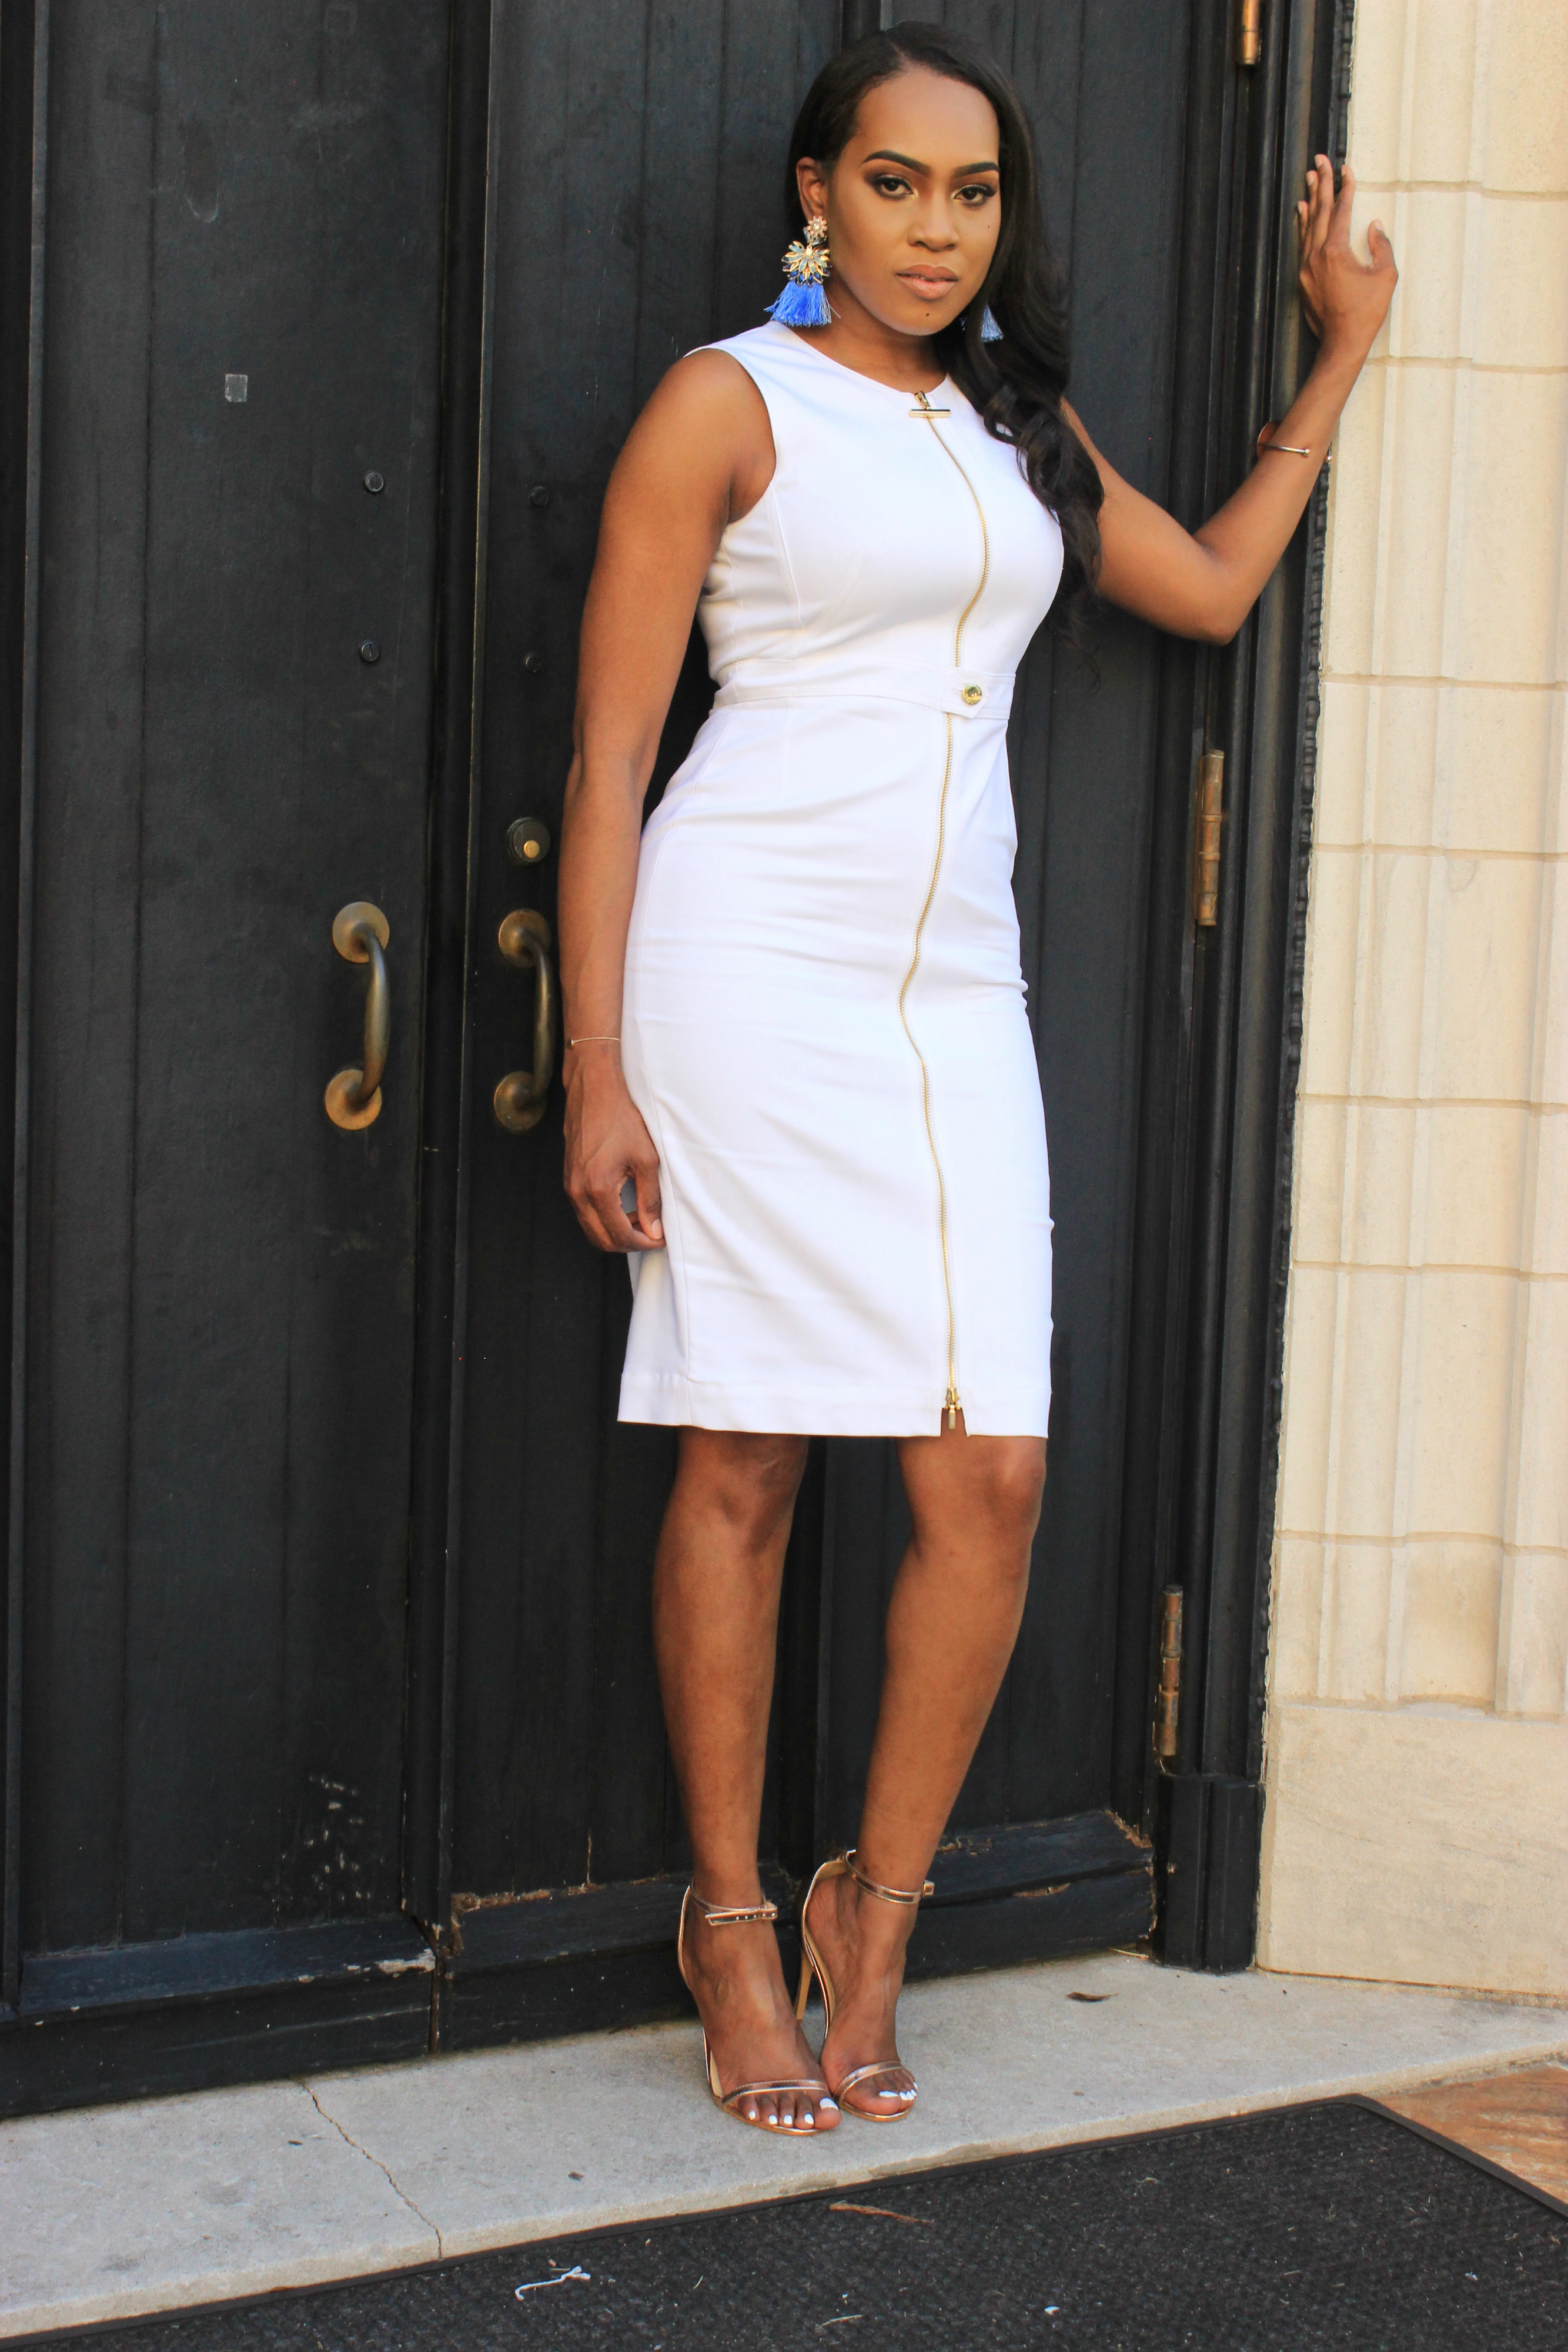 Style-Files-White-Sheath-Calvin-Klein-Dress-with-front-exposed-gold-zipper-sky-blue-fringe-earrings-truffle-collection-barely-there-heel-sandal-rose-gold-how-to-wear-white-to-work-birmingham-top-blogger-oohlalablog-10